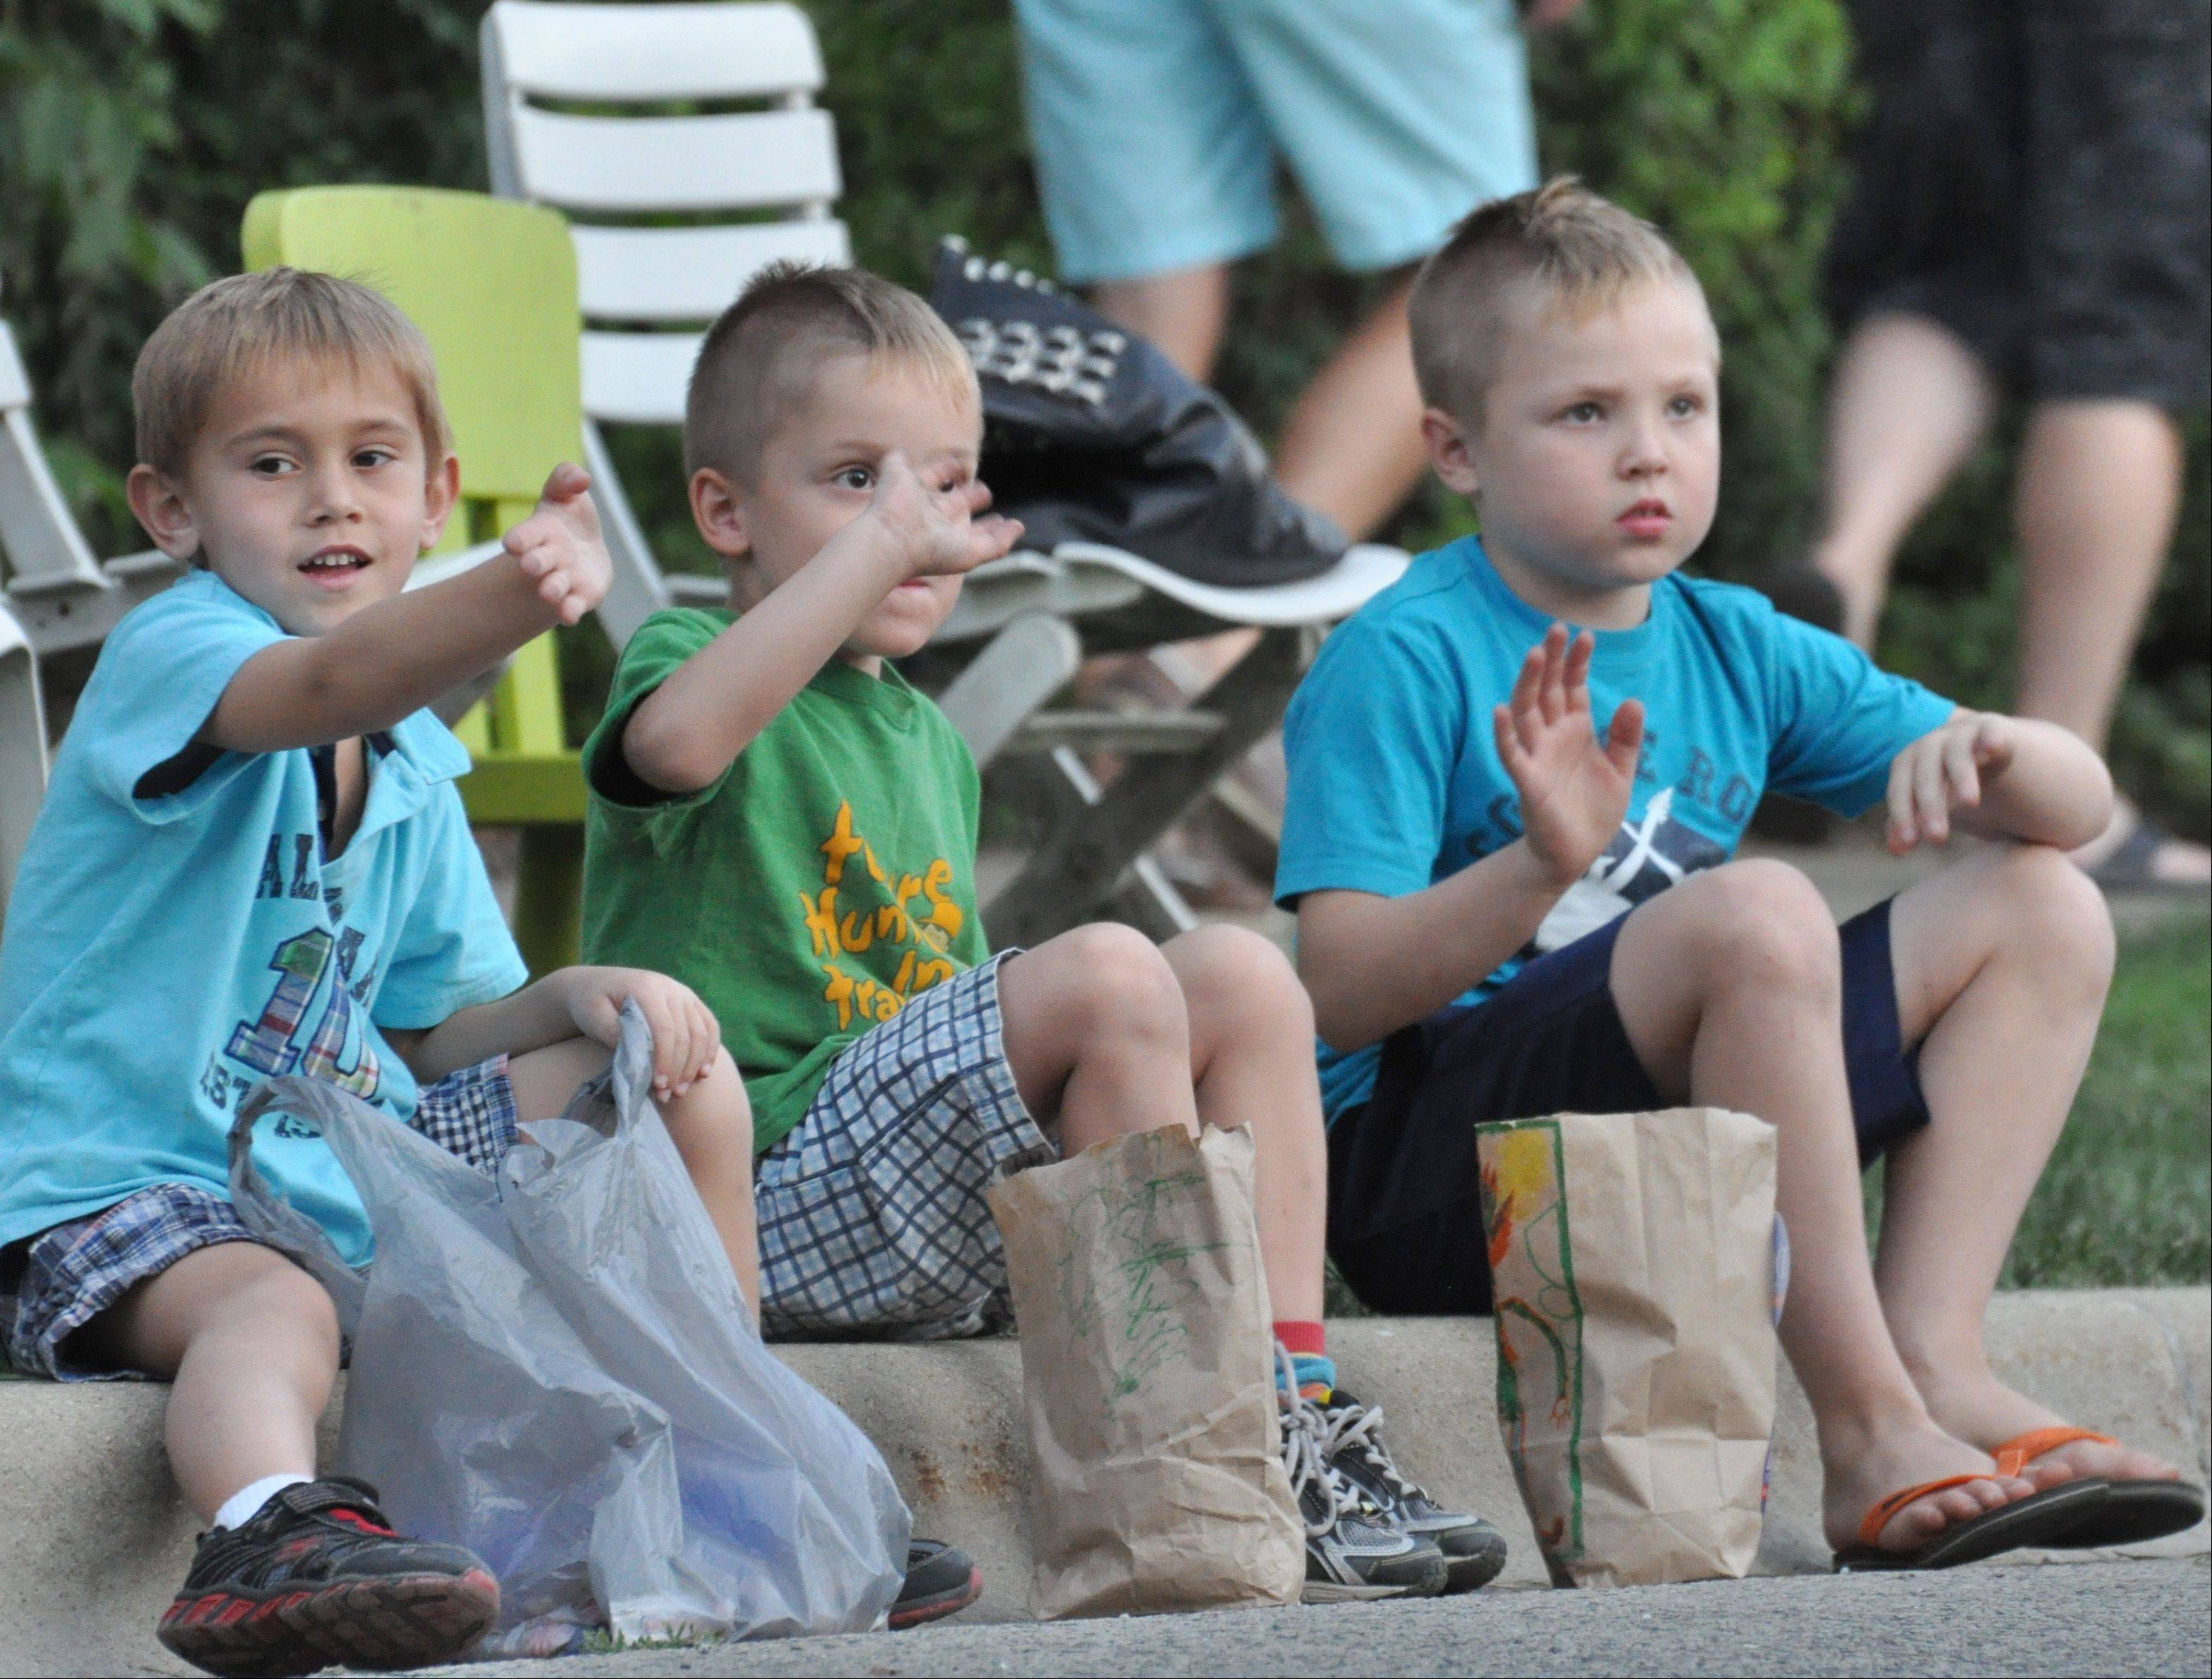 From left, Vince Fenzel, 5, Hunter Bremer, 5, and Christian Bremer, 7, wave at a float during the Summer Days parade in Grayslake Saturday.